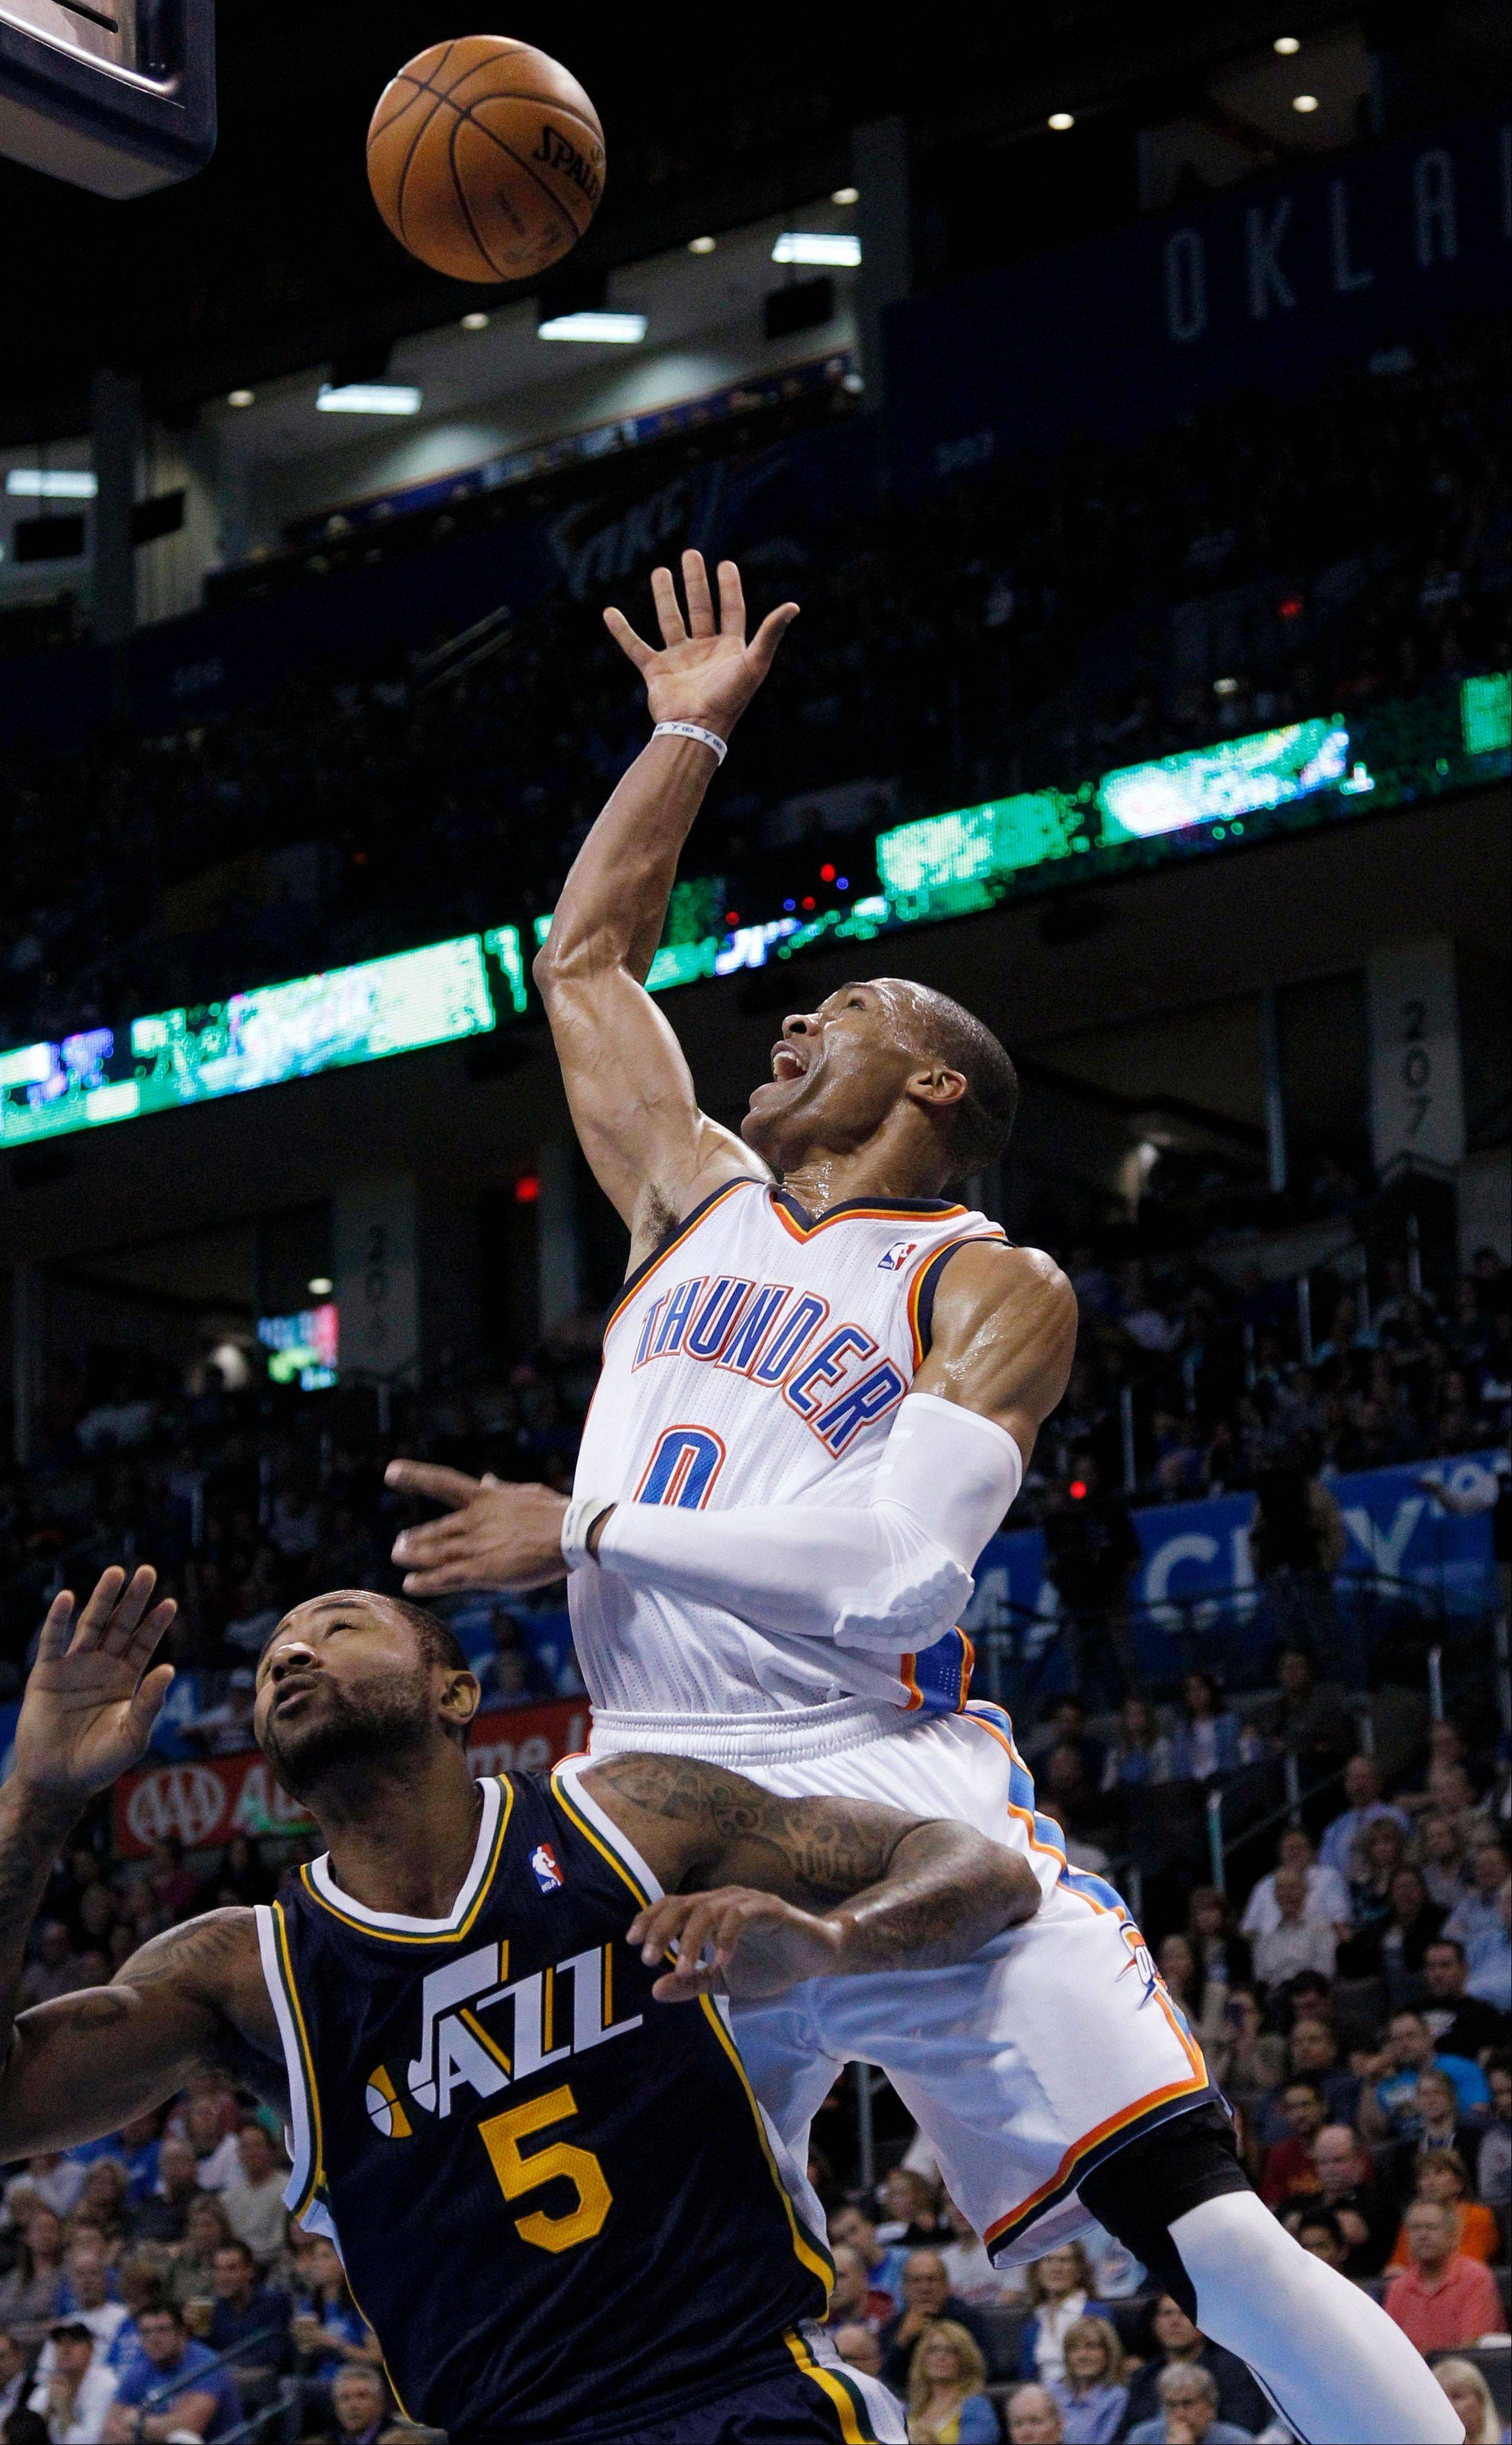 Oklahoma City Thunder guard Russell Westbrook releases a shot over Utah Jazz guard Mo Williams Friday during the second quarter in Oklahoma City.